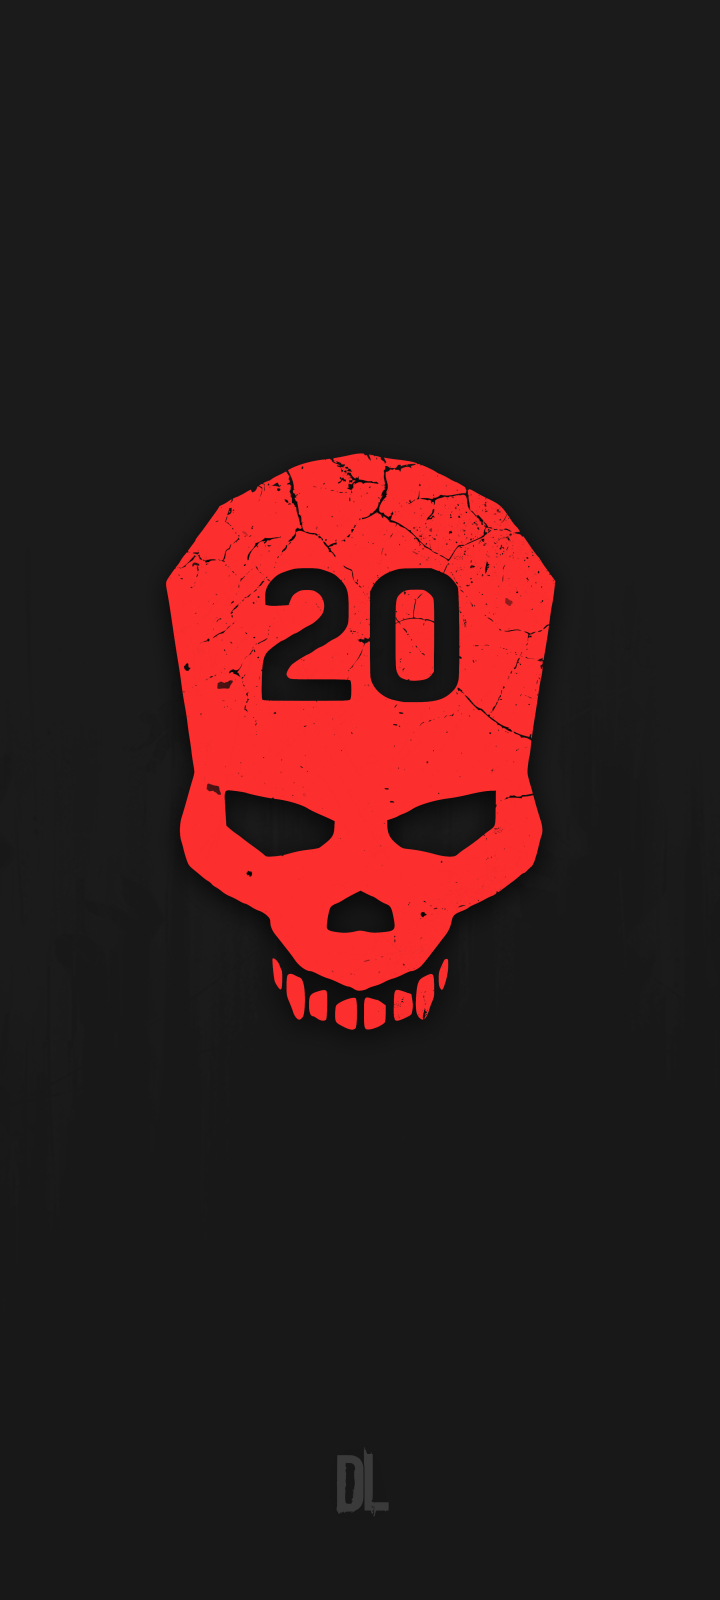 720x1600 Cant Touch This Dying Light Minimalist Skull 720x1600